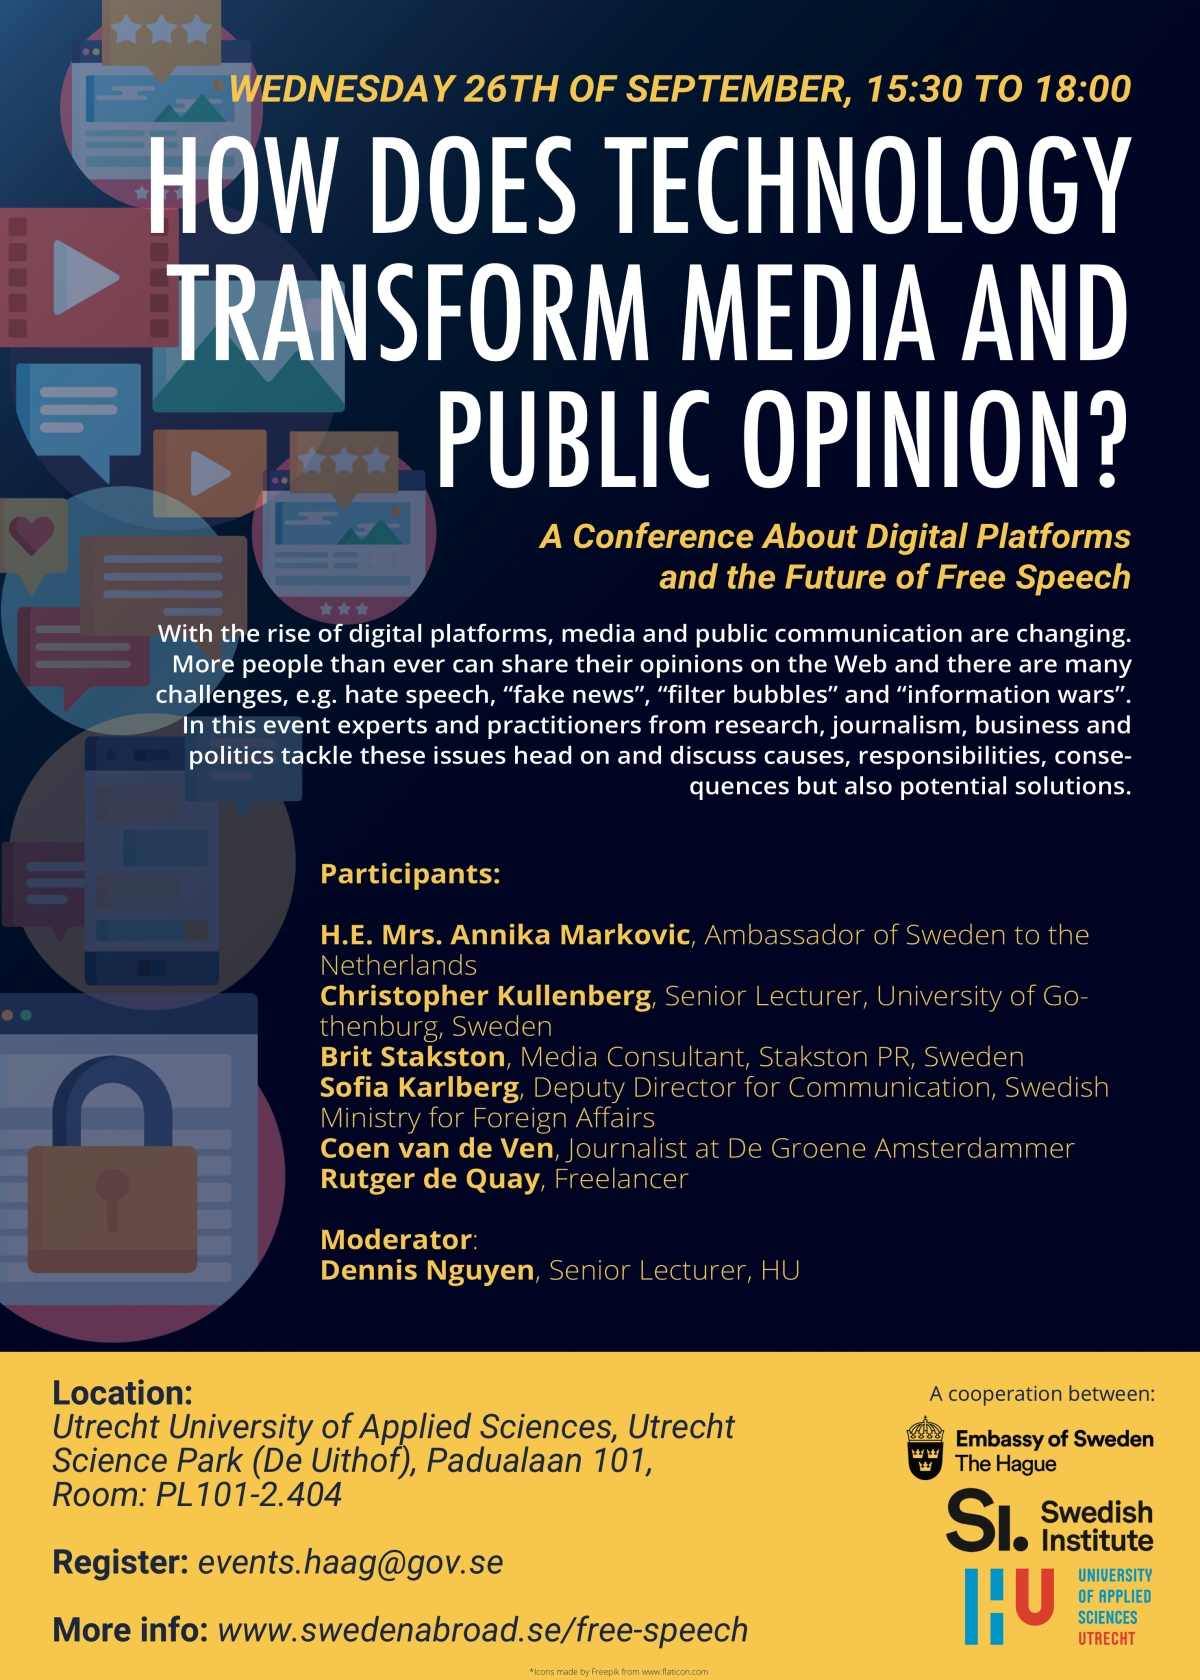 How Does Technology Transform Media and Public Opinion?  A Conference with the Swedish Embassy in Den Haag at the University of Applied Sciences inUtrecht